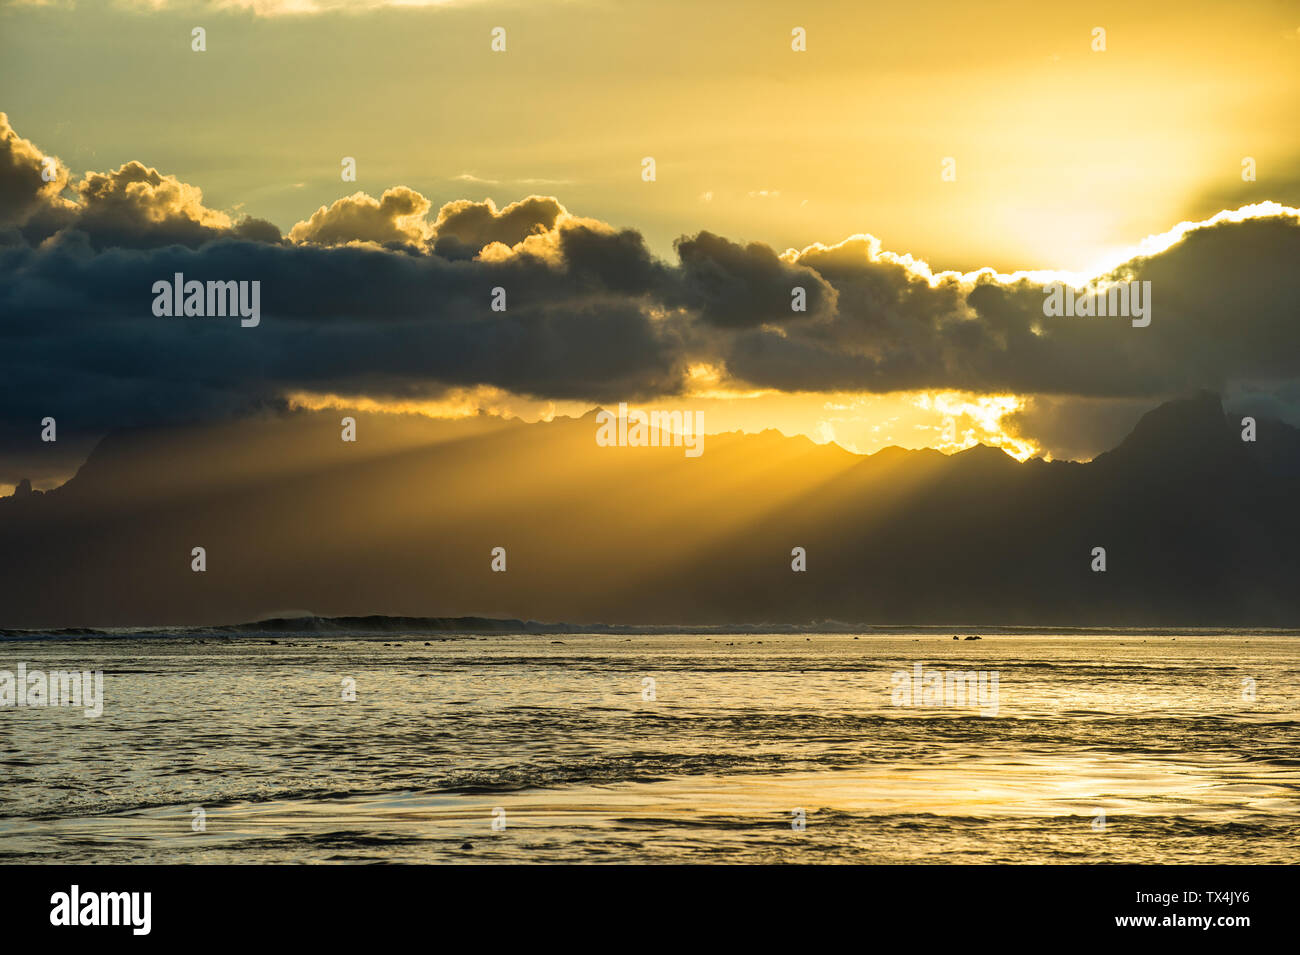 French Polynesia, Tahiti, sunrays breaking through the clouds over Moorea Stock Photo